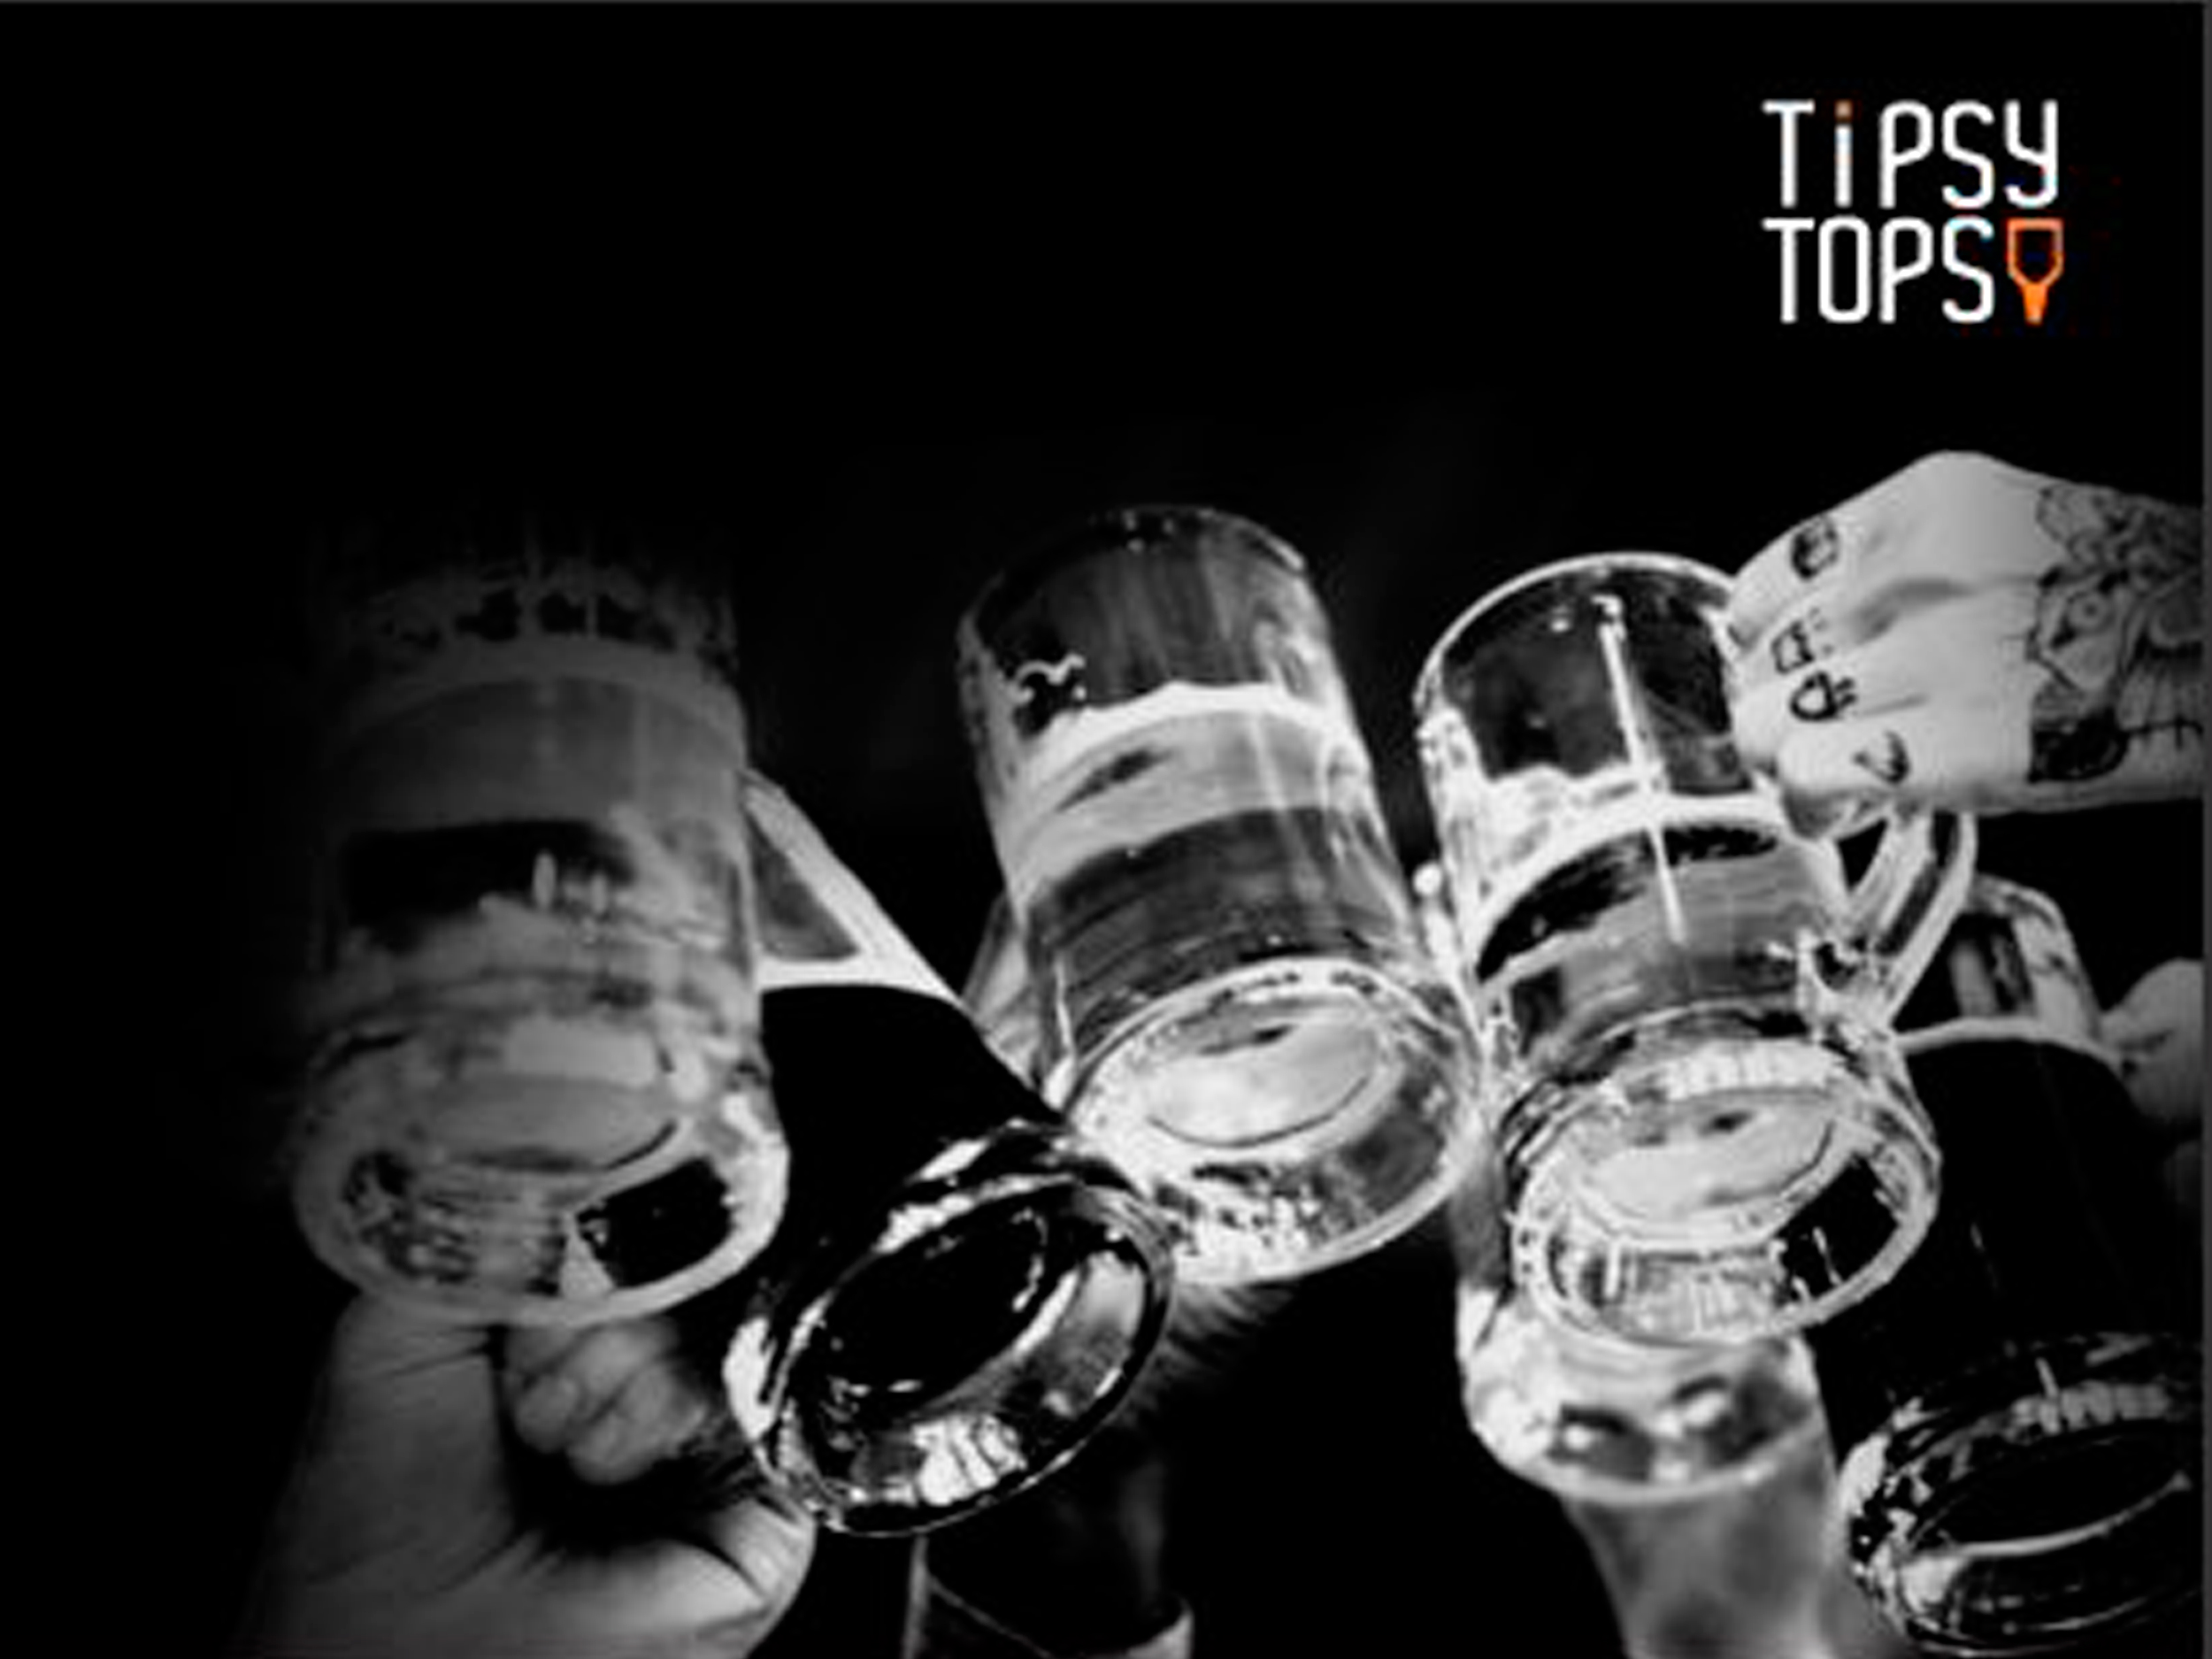 Order your liquors online at Tipsy Topsy